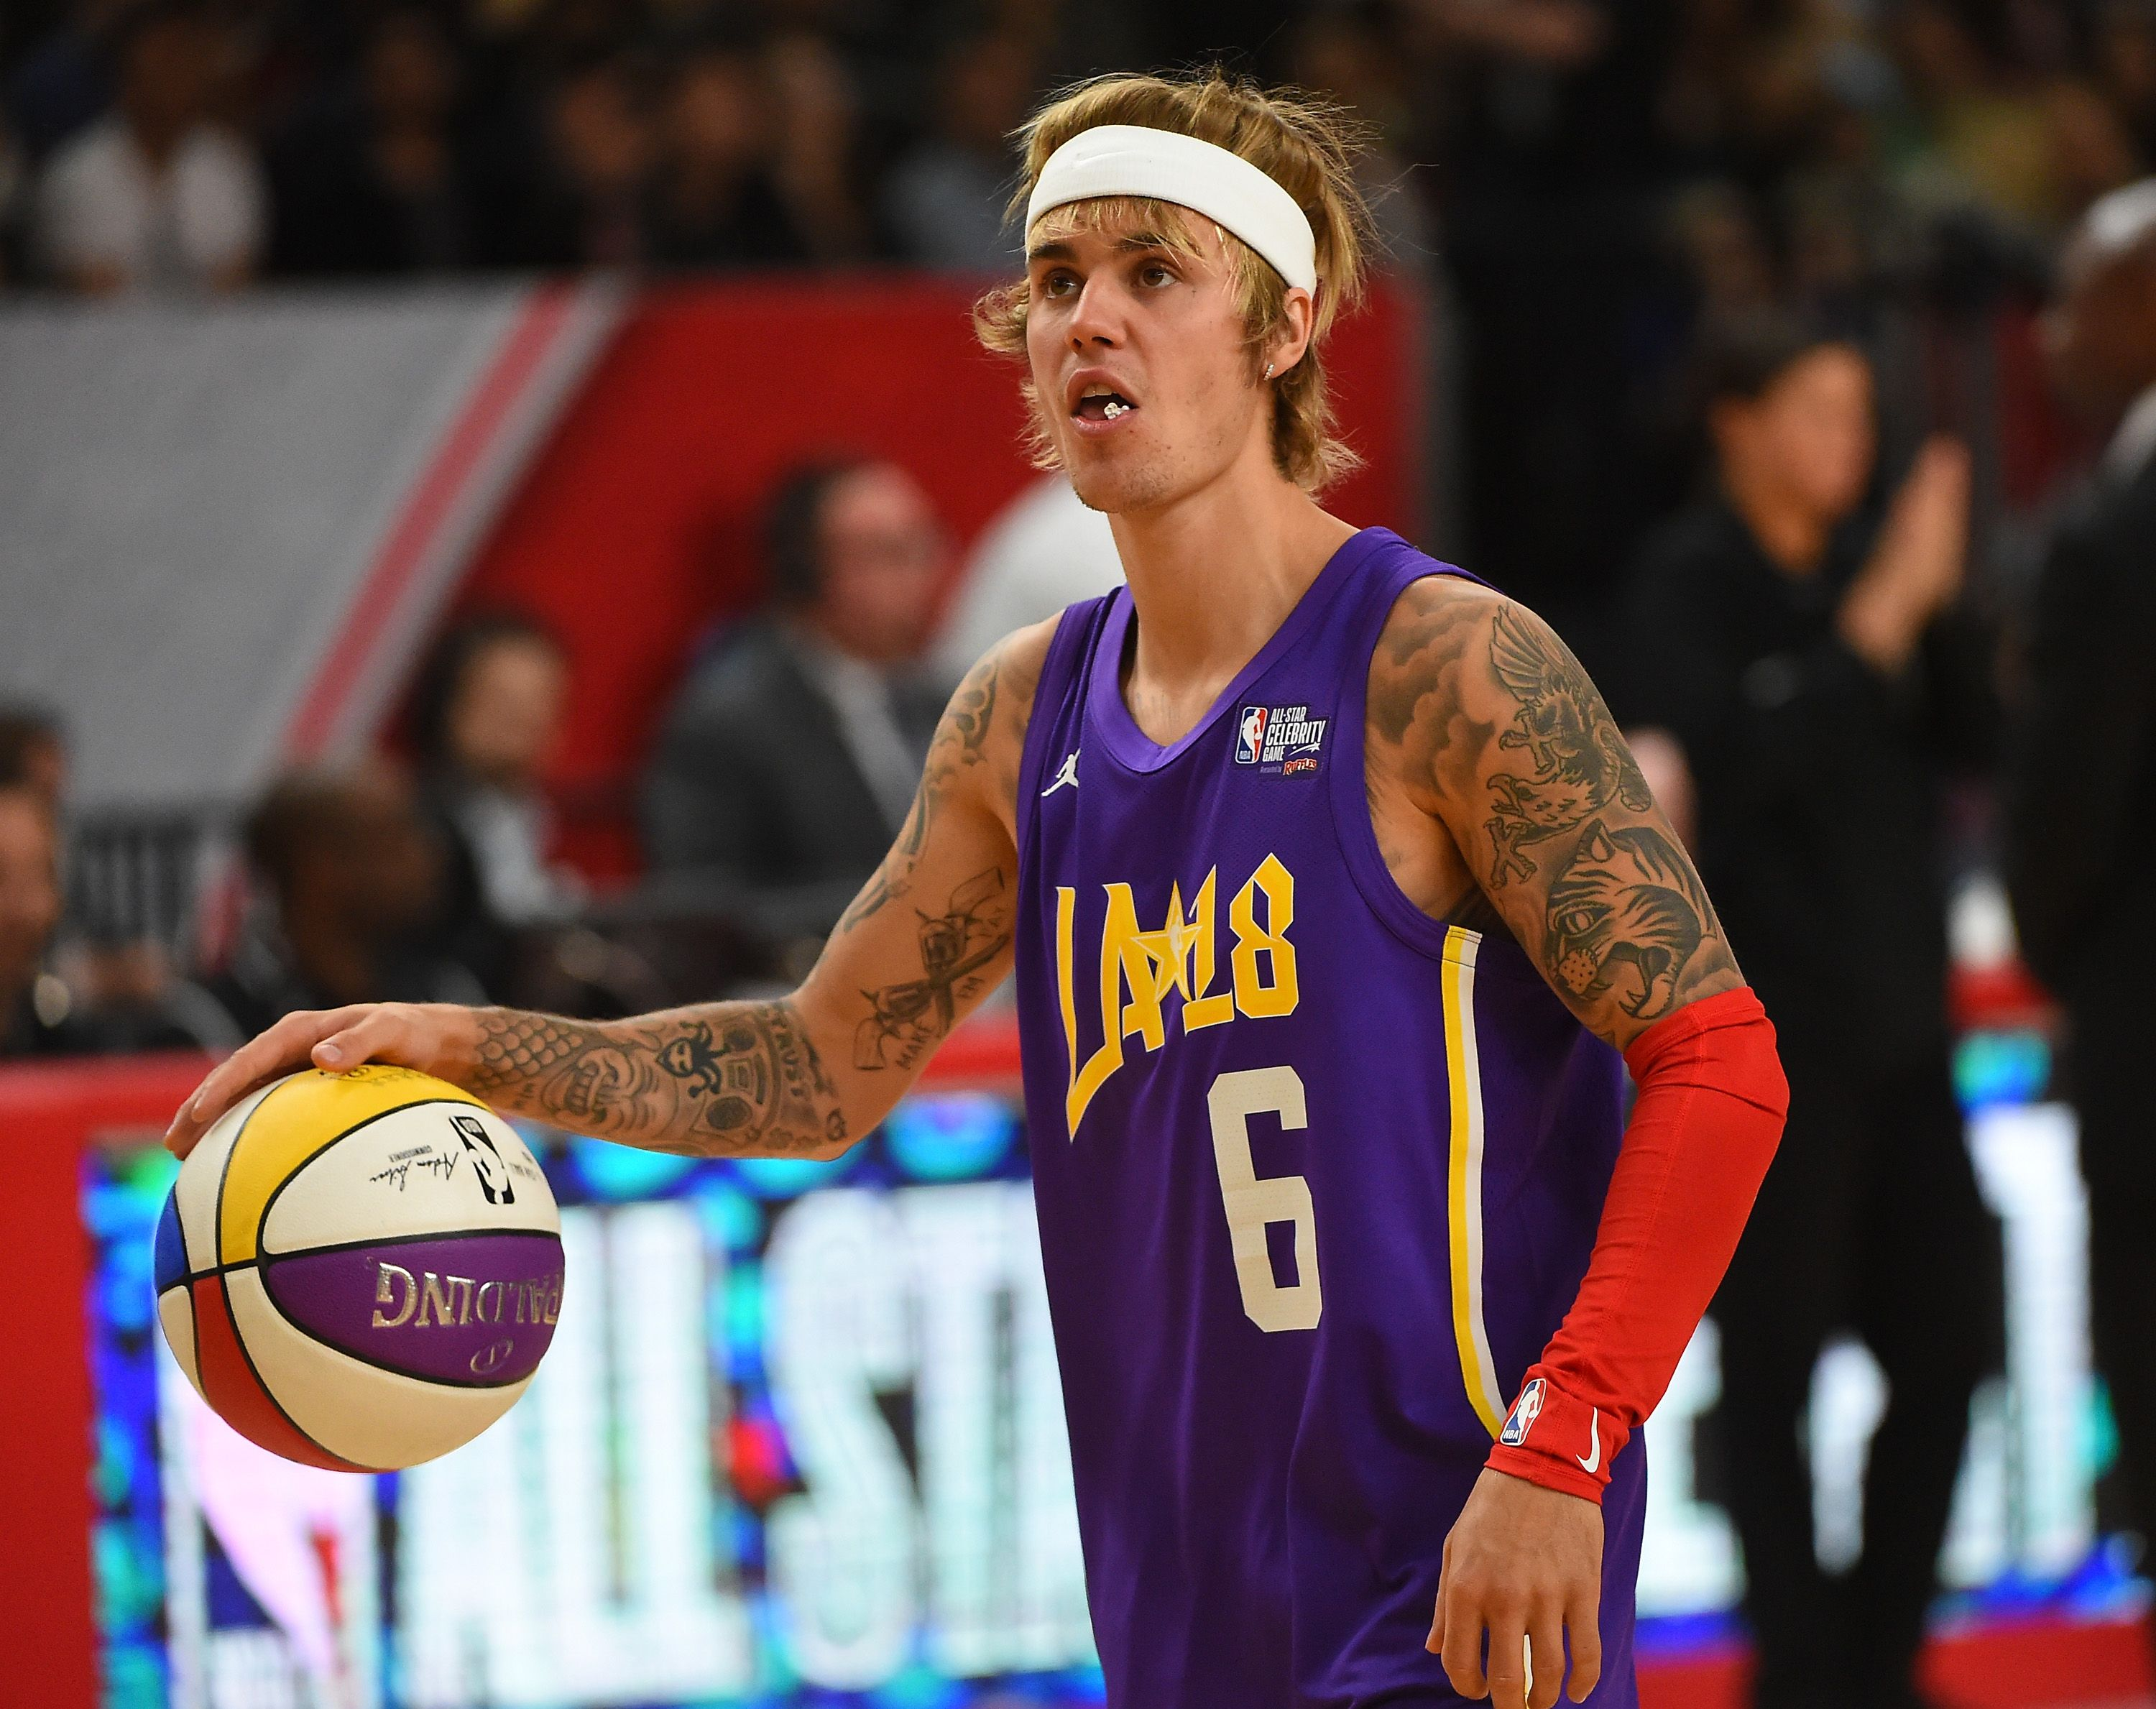 833f31deb9fc0 So this is what Justin Bieber's face tattoo actually says